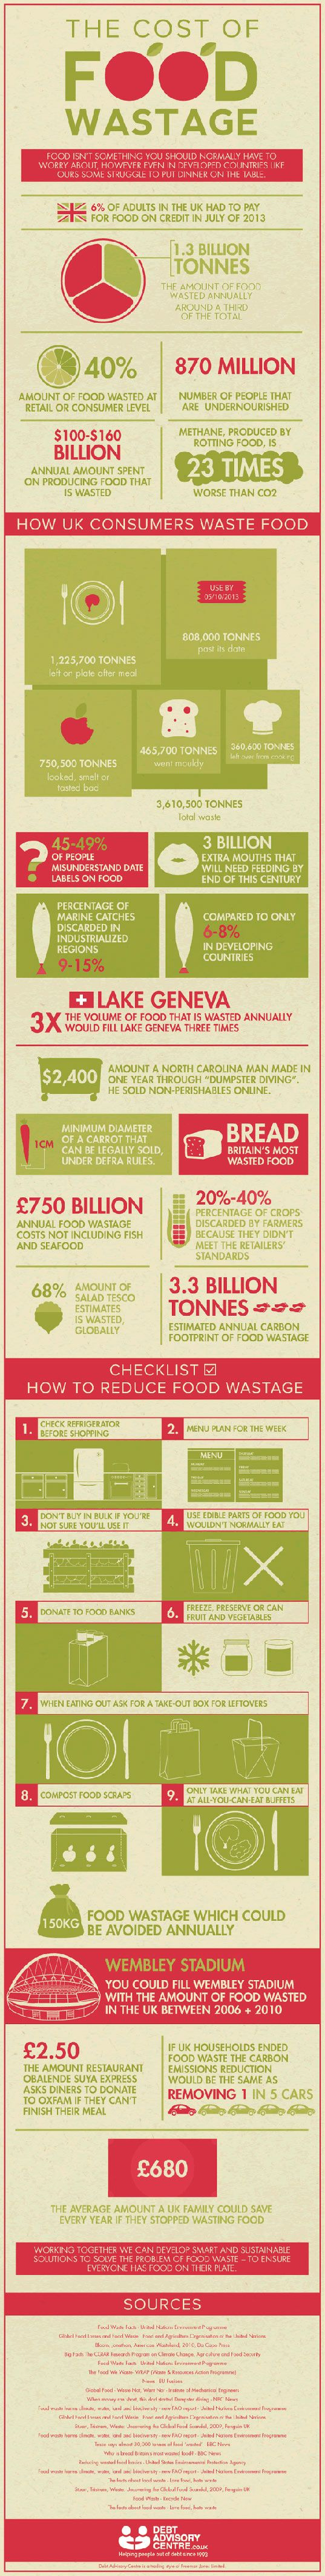 the cost of food wastage, infographic, food waste, sustainable lifestyle, sustainable food, agriculture, sustainable agriculture, efficiency...